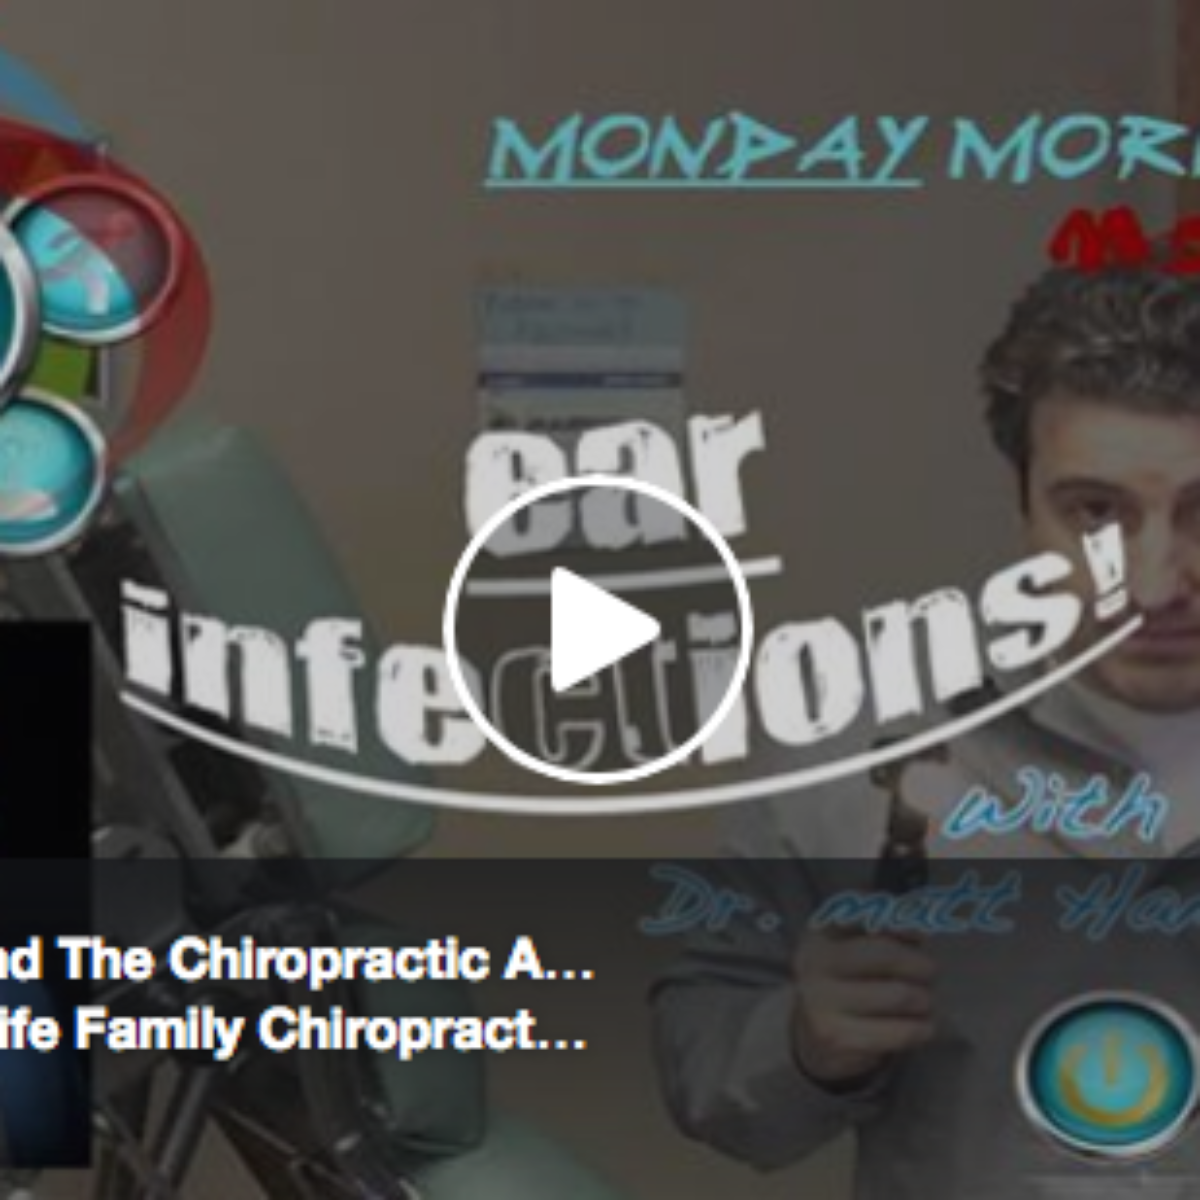 Ear Infections & The Chiropractic Approach